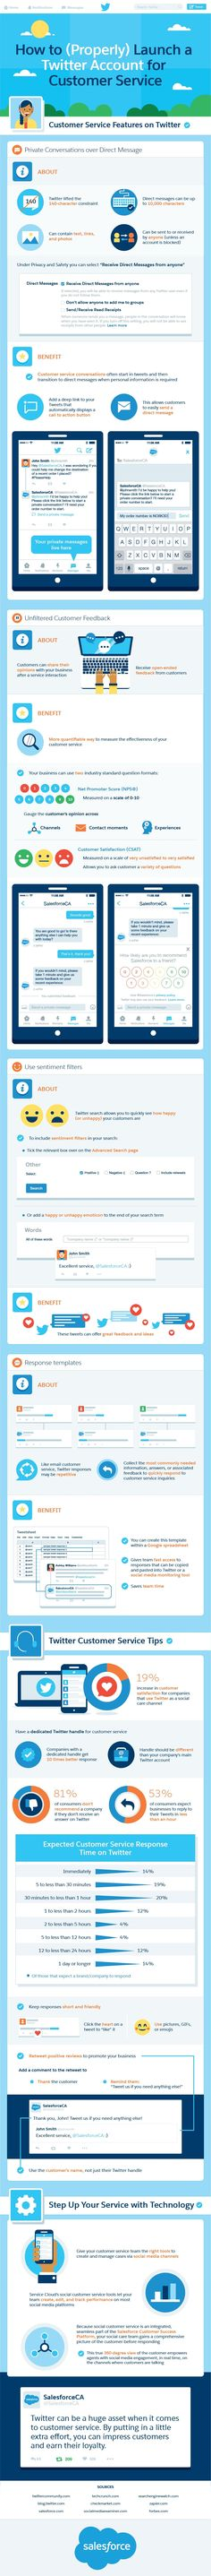 How to (Properly) Launch a Twitter Account for Customer Service